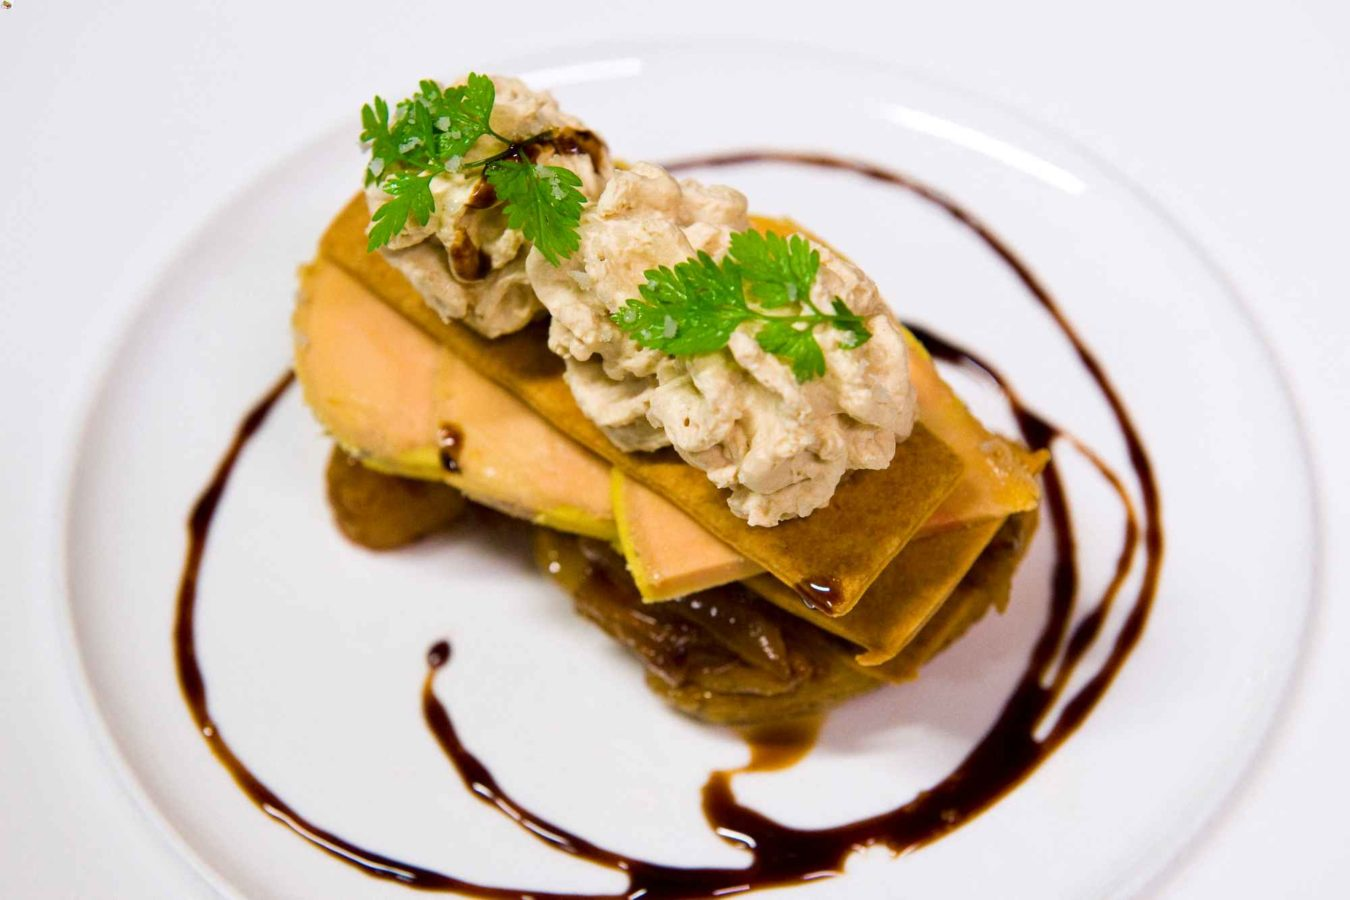 Lab-grown foie gras could soon be a reality thanks to this Parisian startup